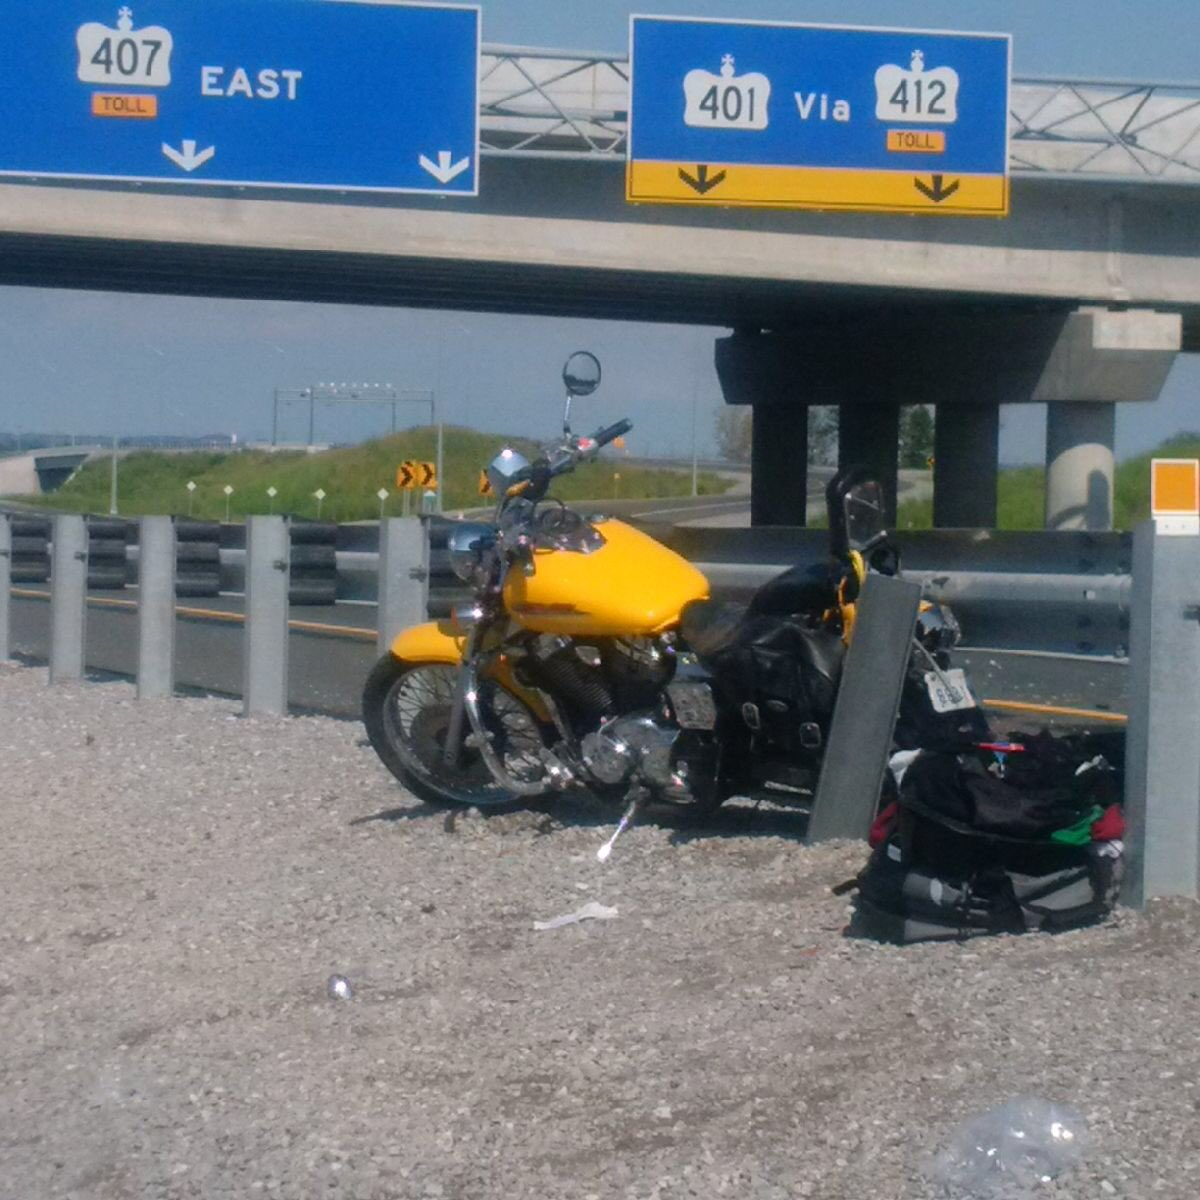 Motorcyclist killed in single vehicle crash on Highway 407